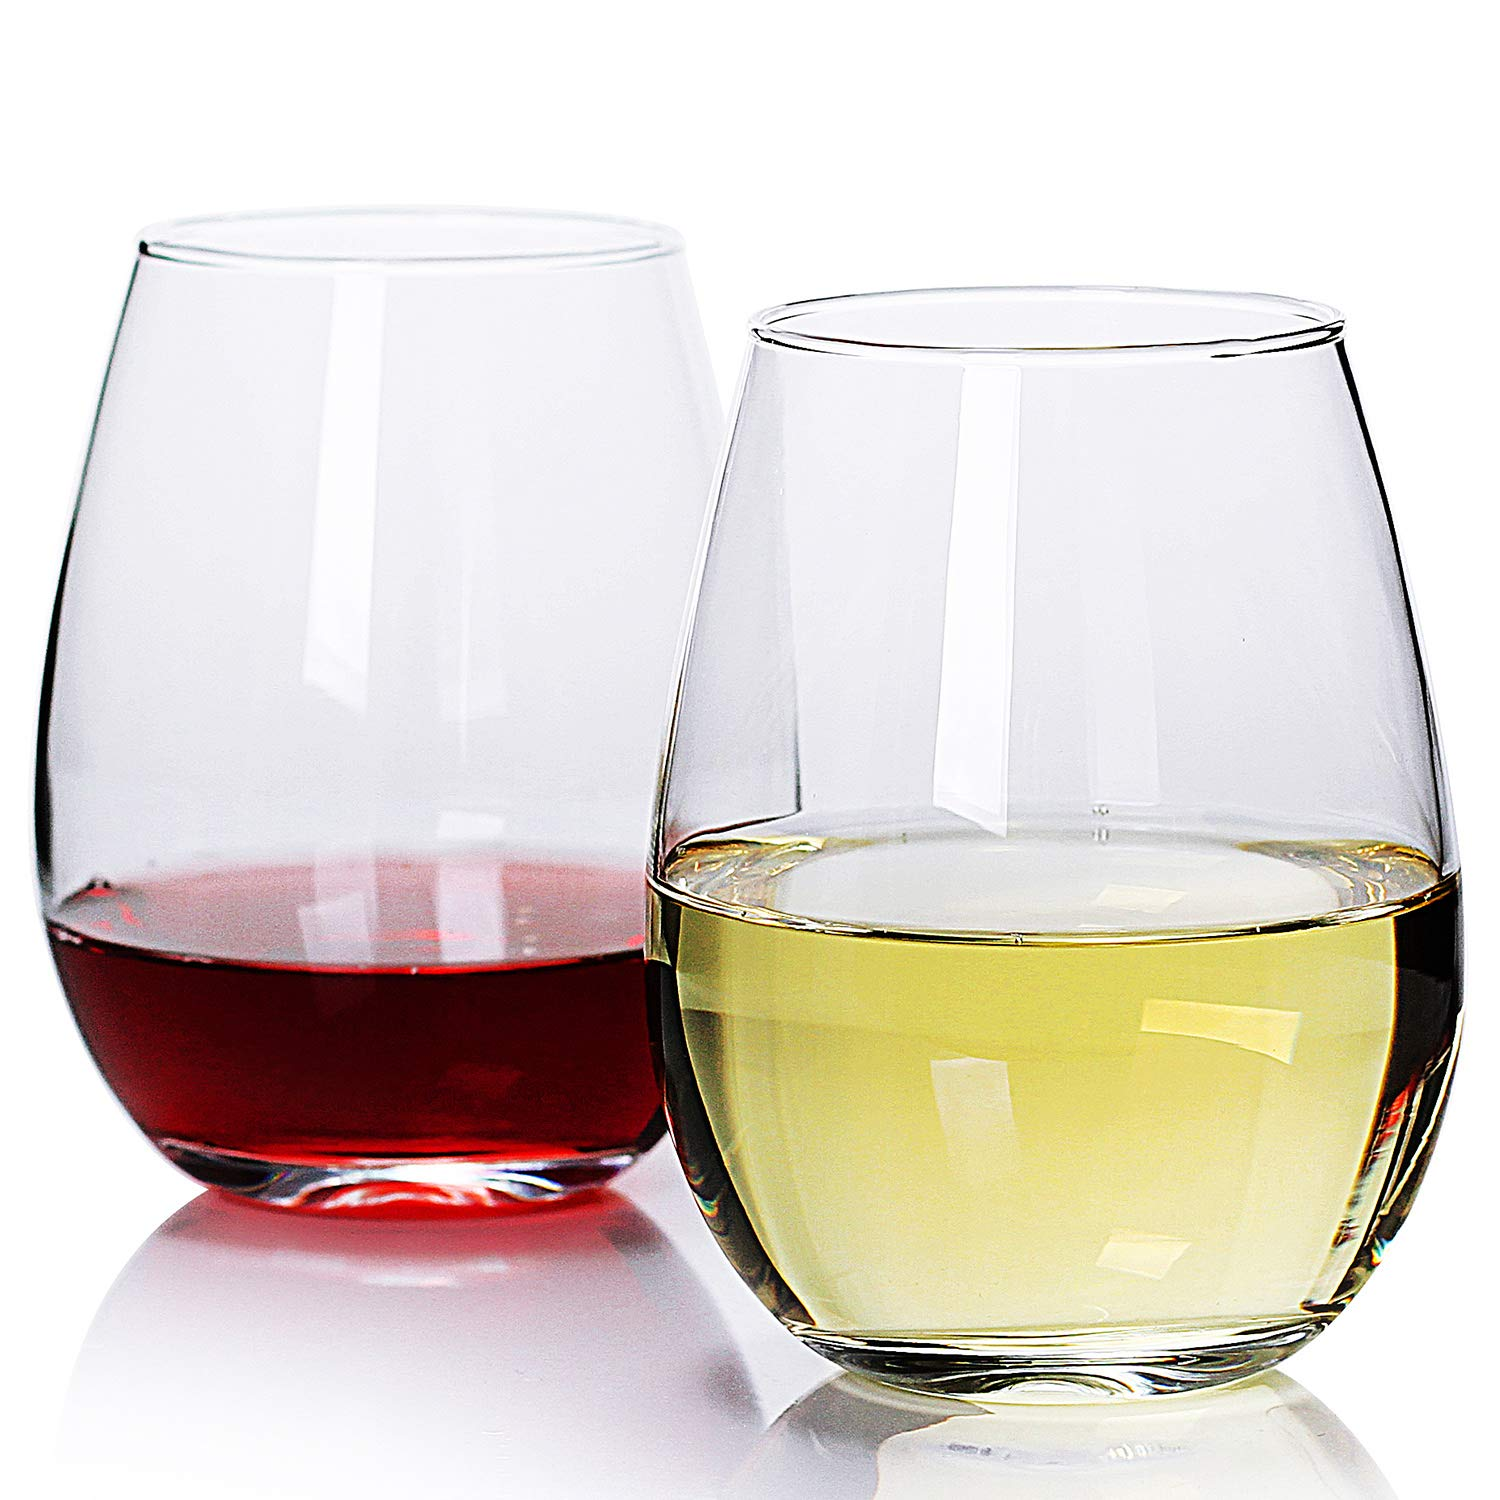 Bavel Stemless Wine Glasses 19oz Set Of Buy Online In Cambodia At Desertcart